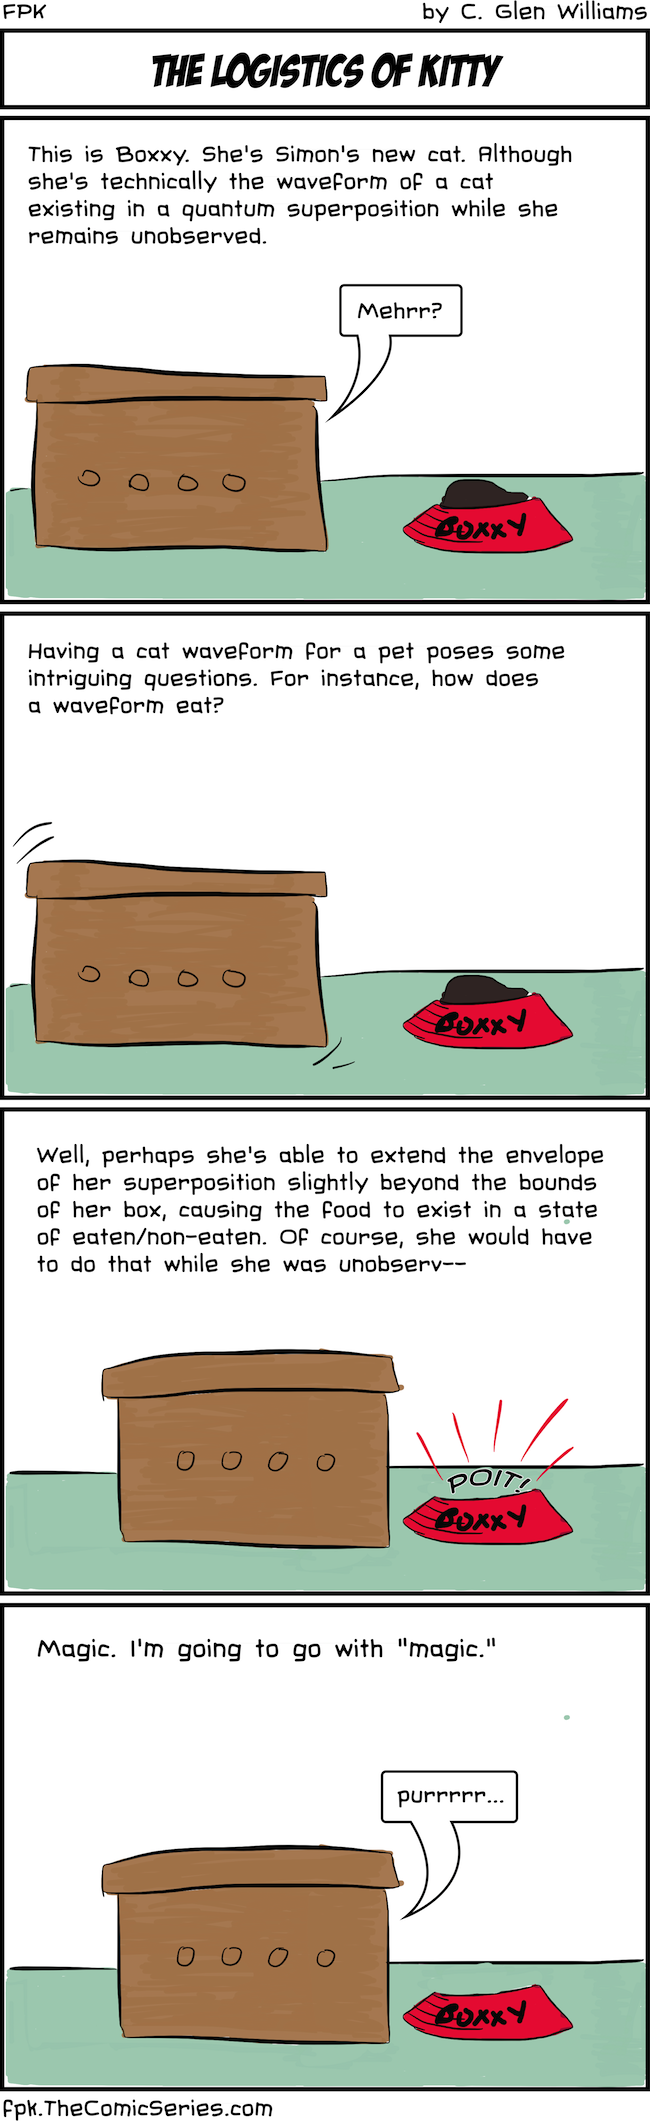 The Logistics of Kitty